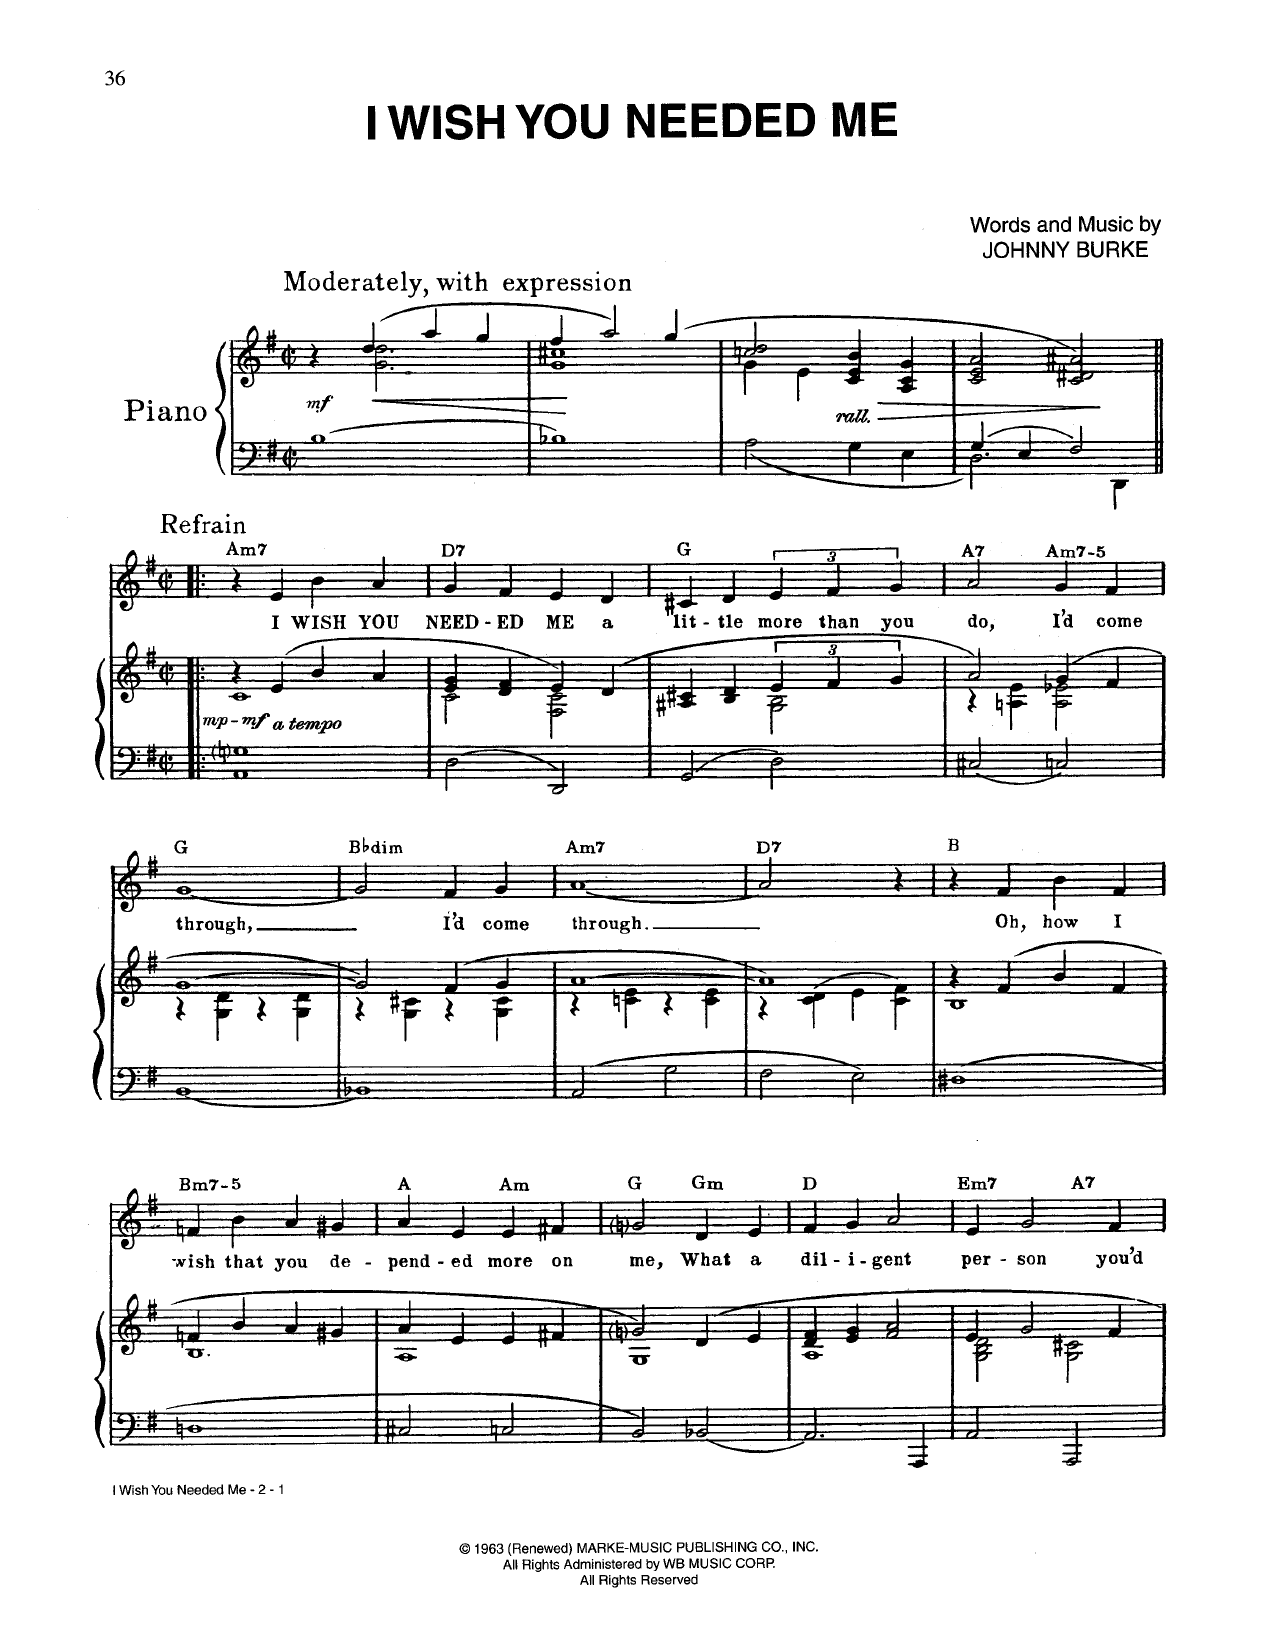 Johnny Burke I Wish You Needed Me Sheet Music Notes Chords